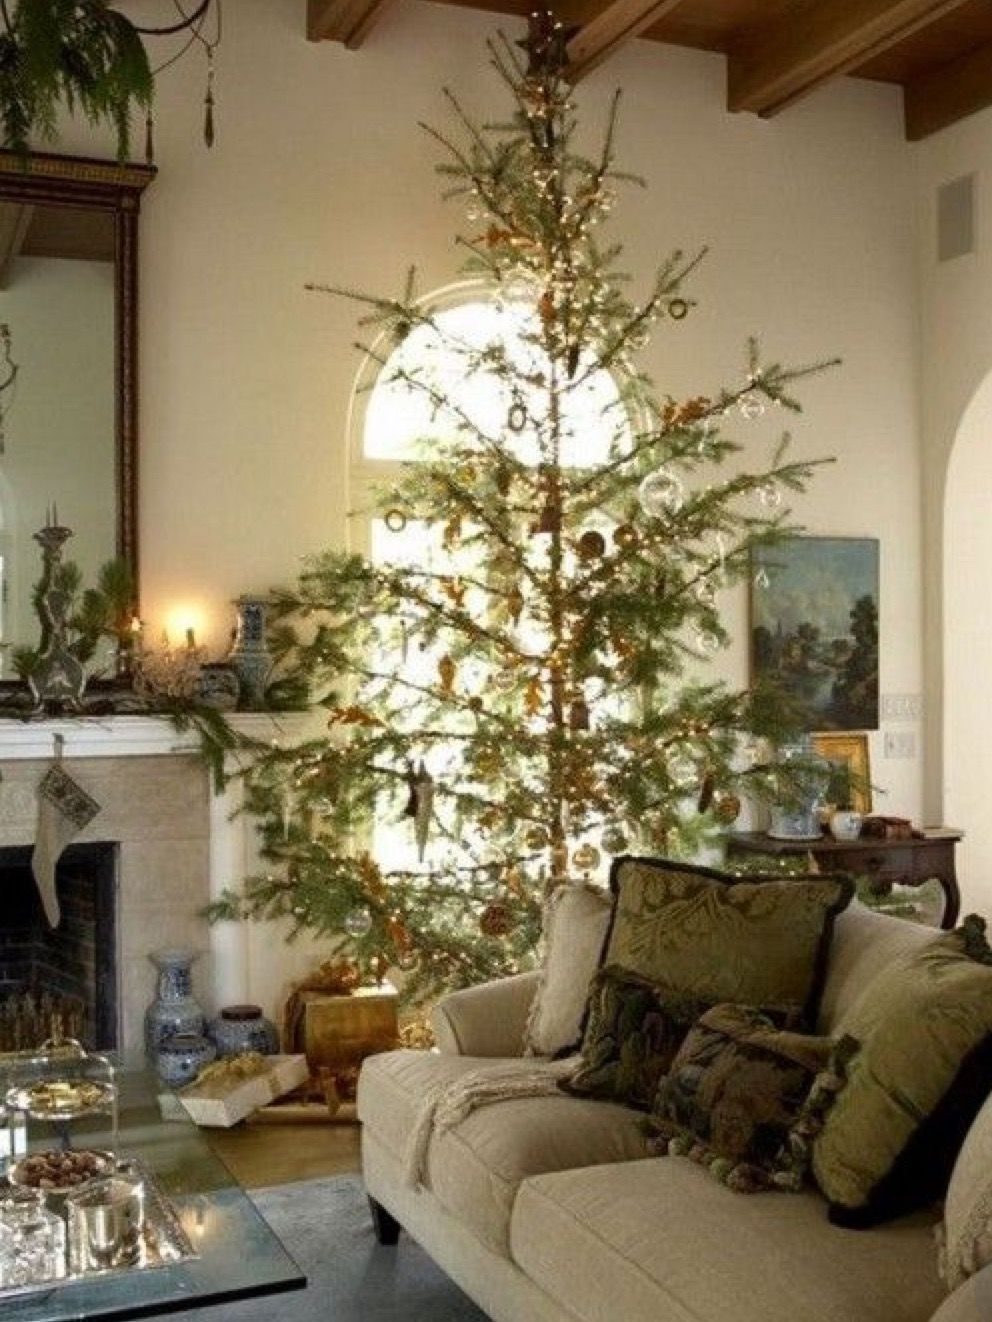 Pin by Oceanic House on Christmas Trees Charlie brown